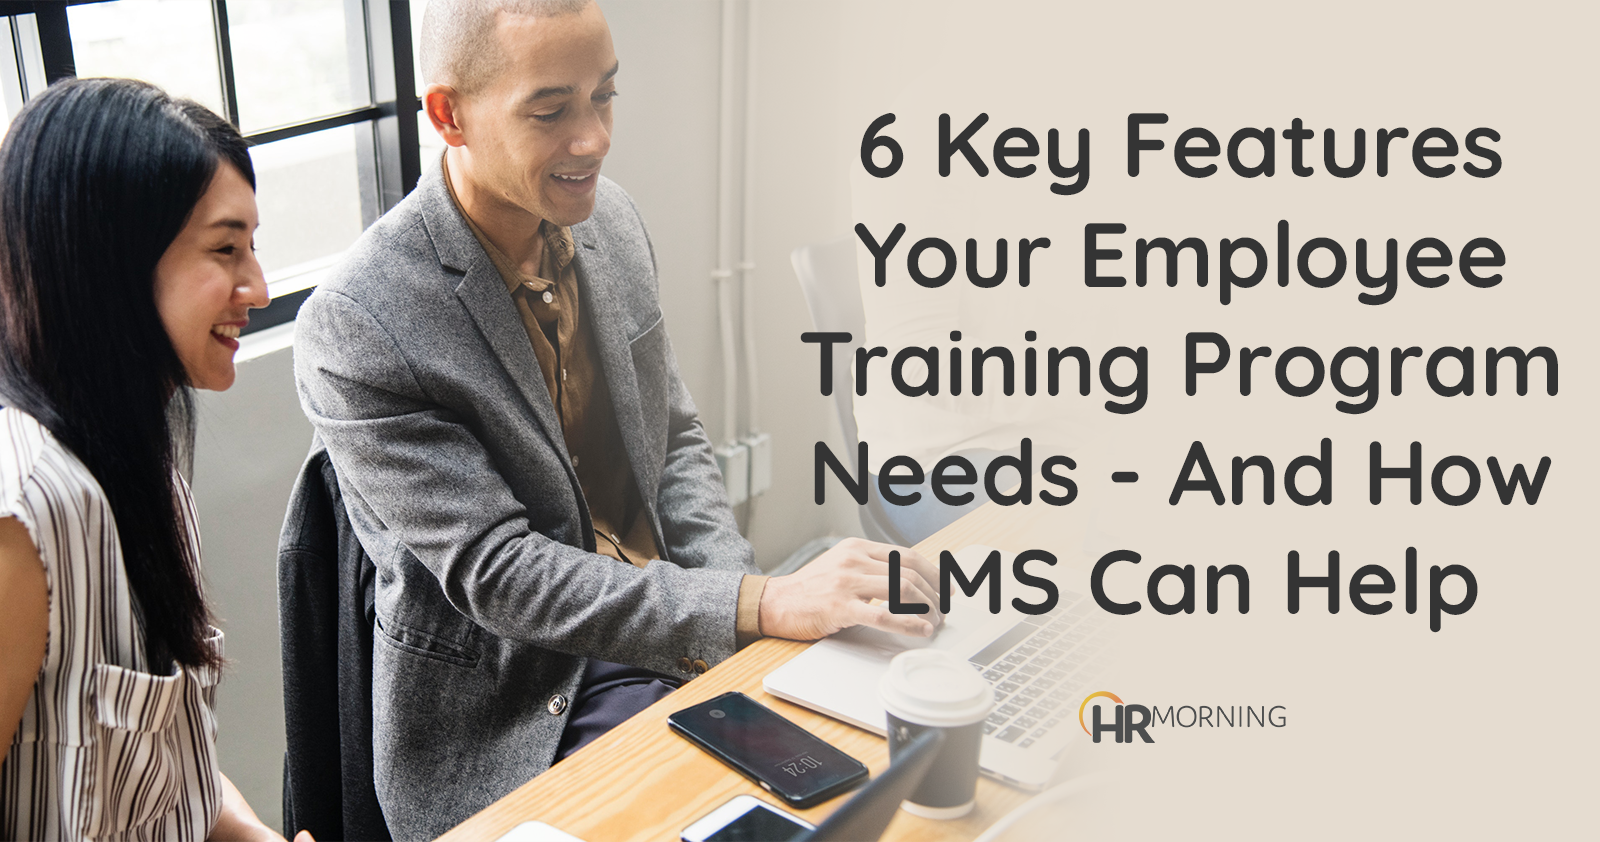 6 key features your employee training program need and how LMS can help